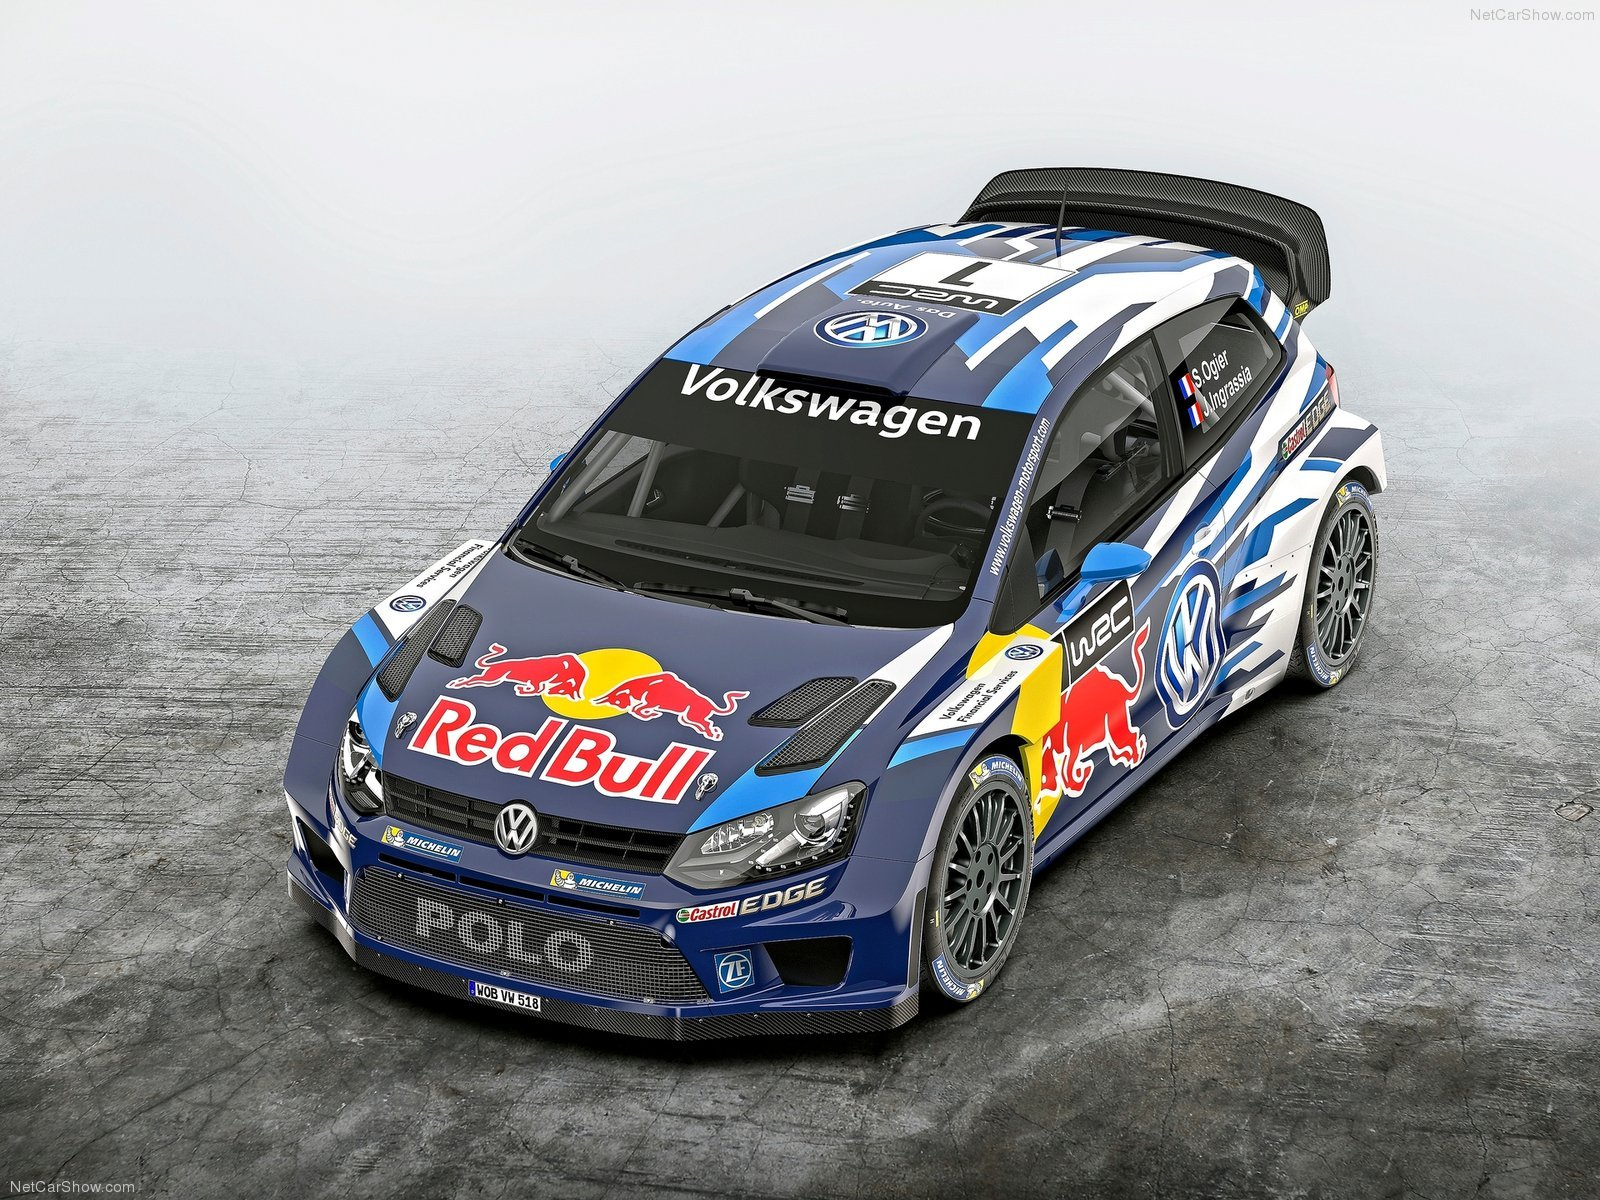 2015 volkswagen polo r wrc racecars cars rally wallpaper 1600x1200 586940 wallpaperup. Black Bedroom Furniture Sets. Home Design Ideas